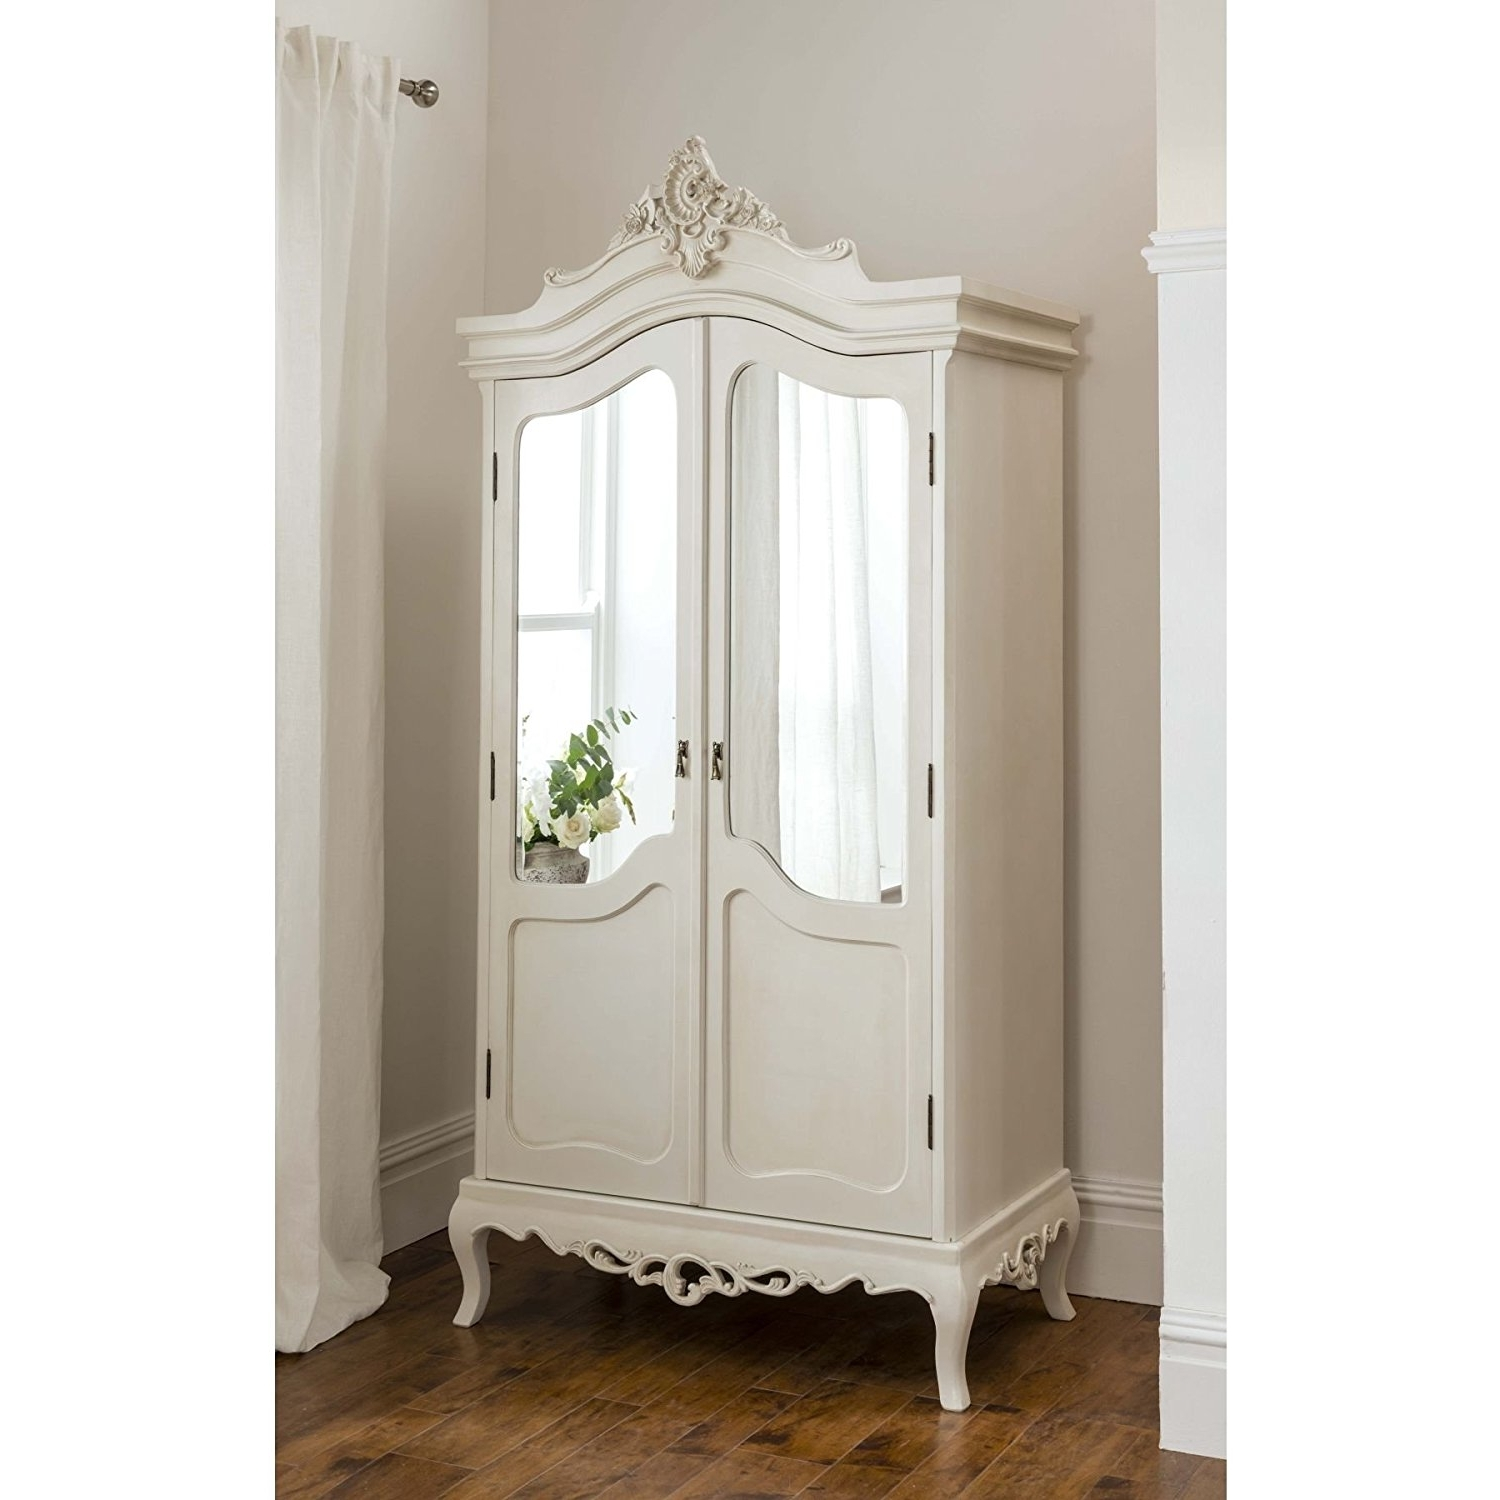 Trendy White French Style Wardrobes Inside Annaelle Antique French Wardrobe: Amazon.co (View 11 of 15)